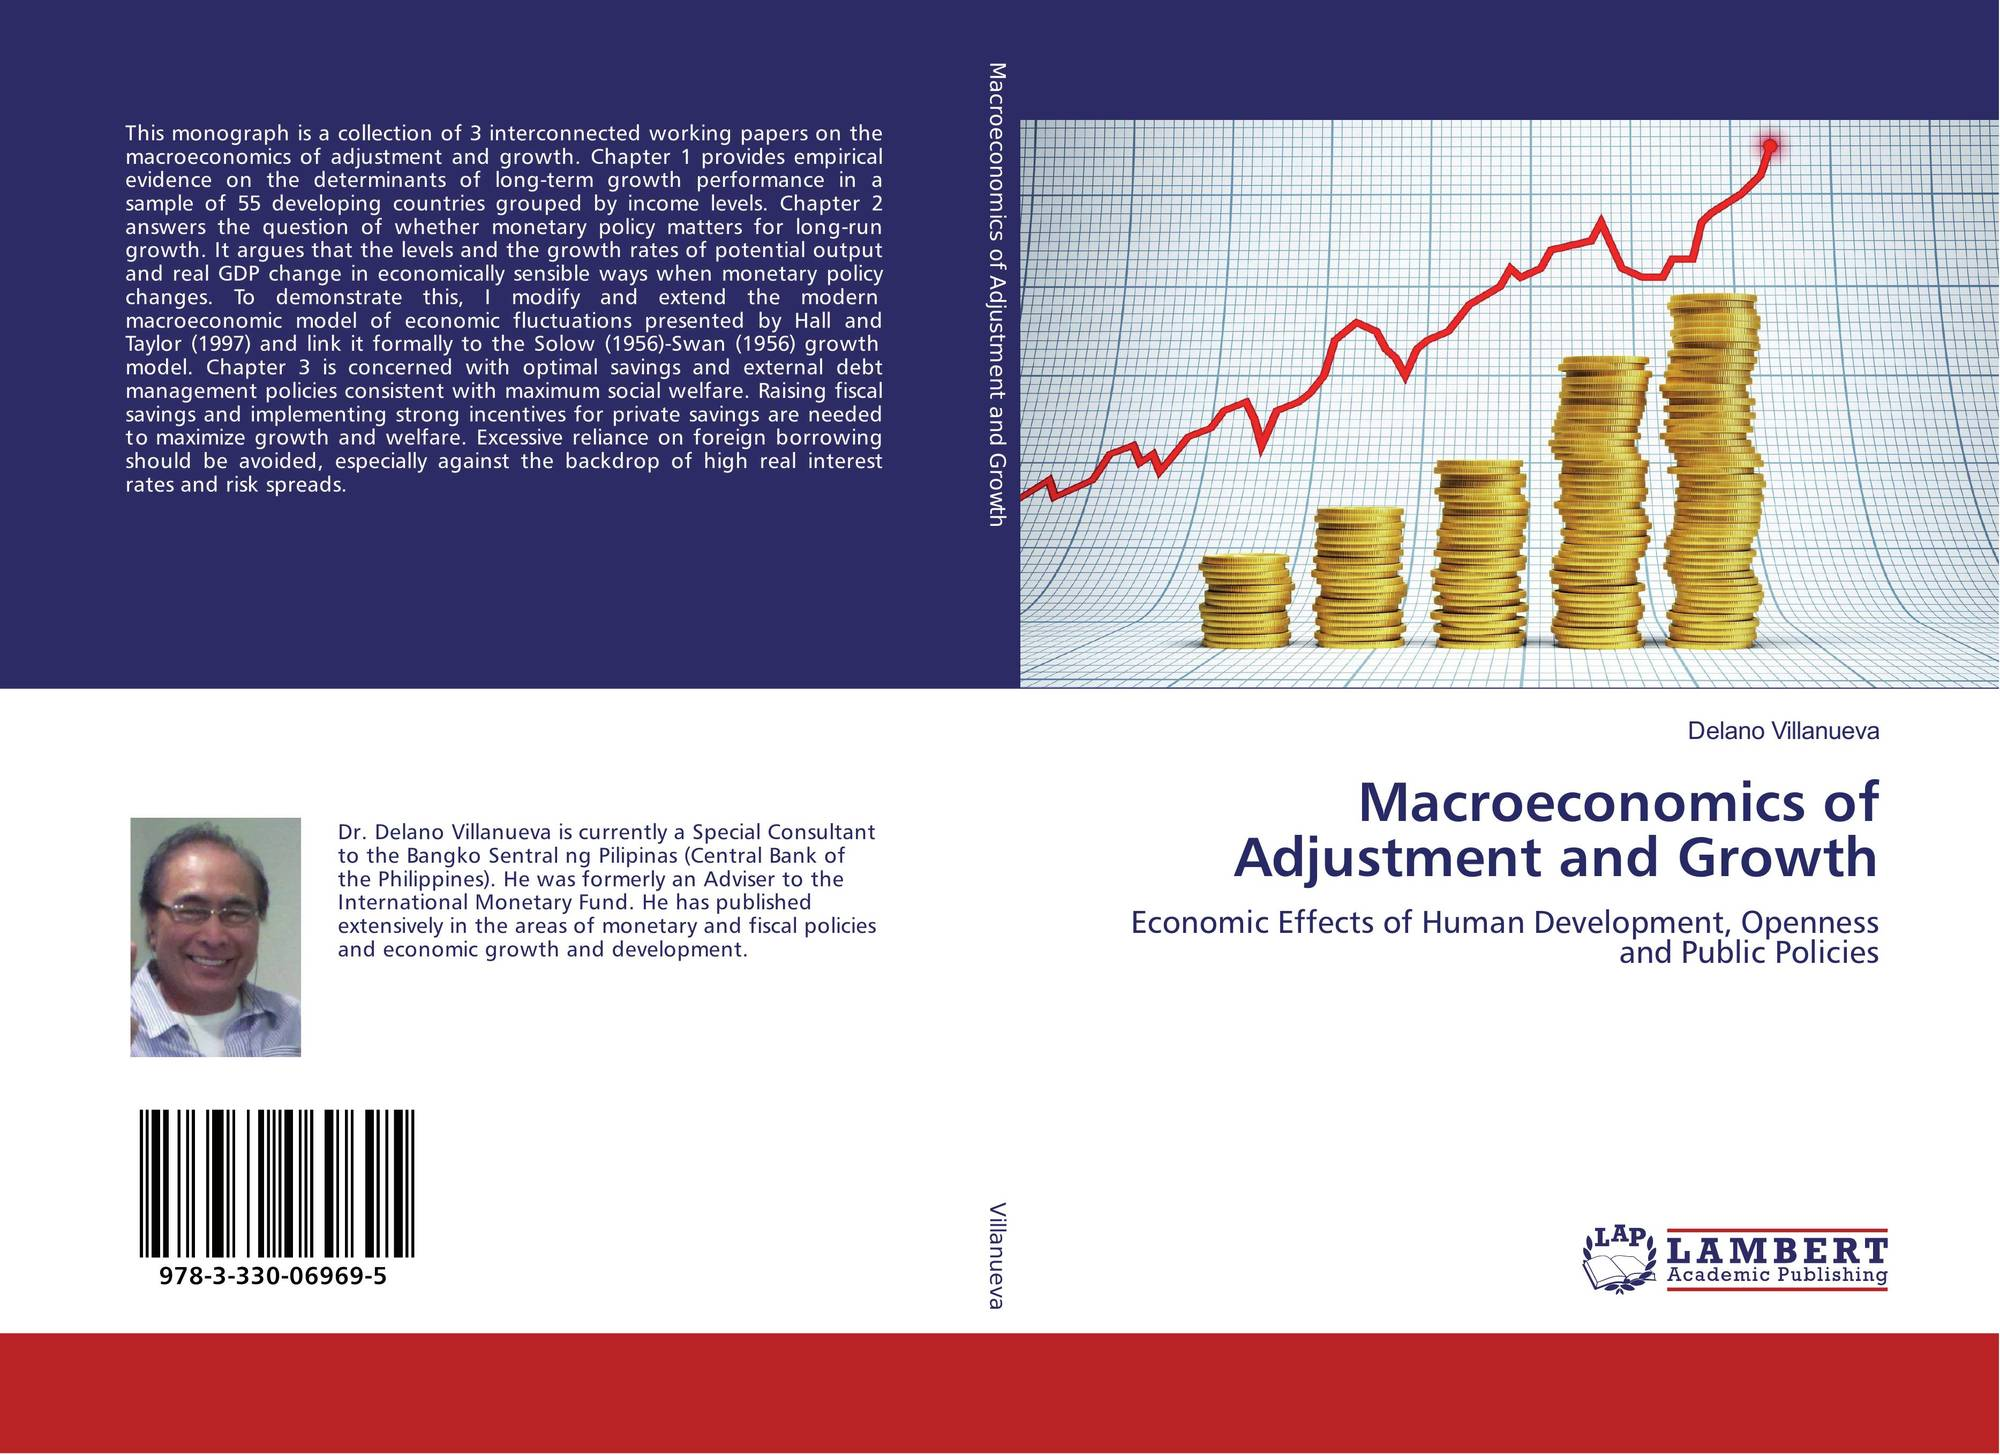 macroeconomics managing public debt You are here: home / papers / oecd working papers on sovereign borrowing and public debt management / the role of public debt managers in contingent liability management.